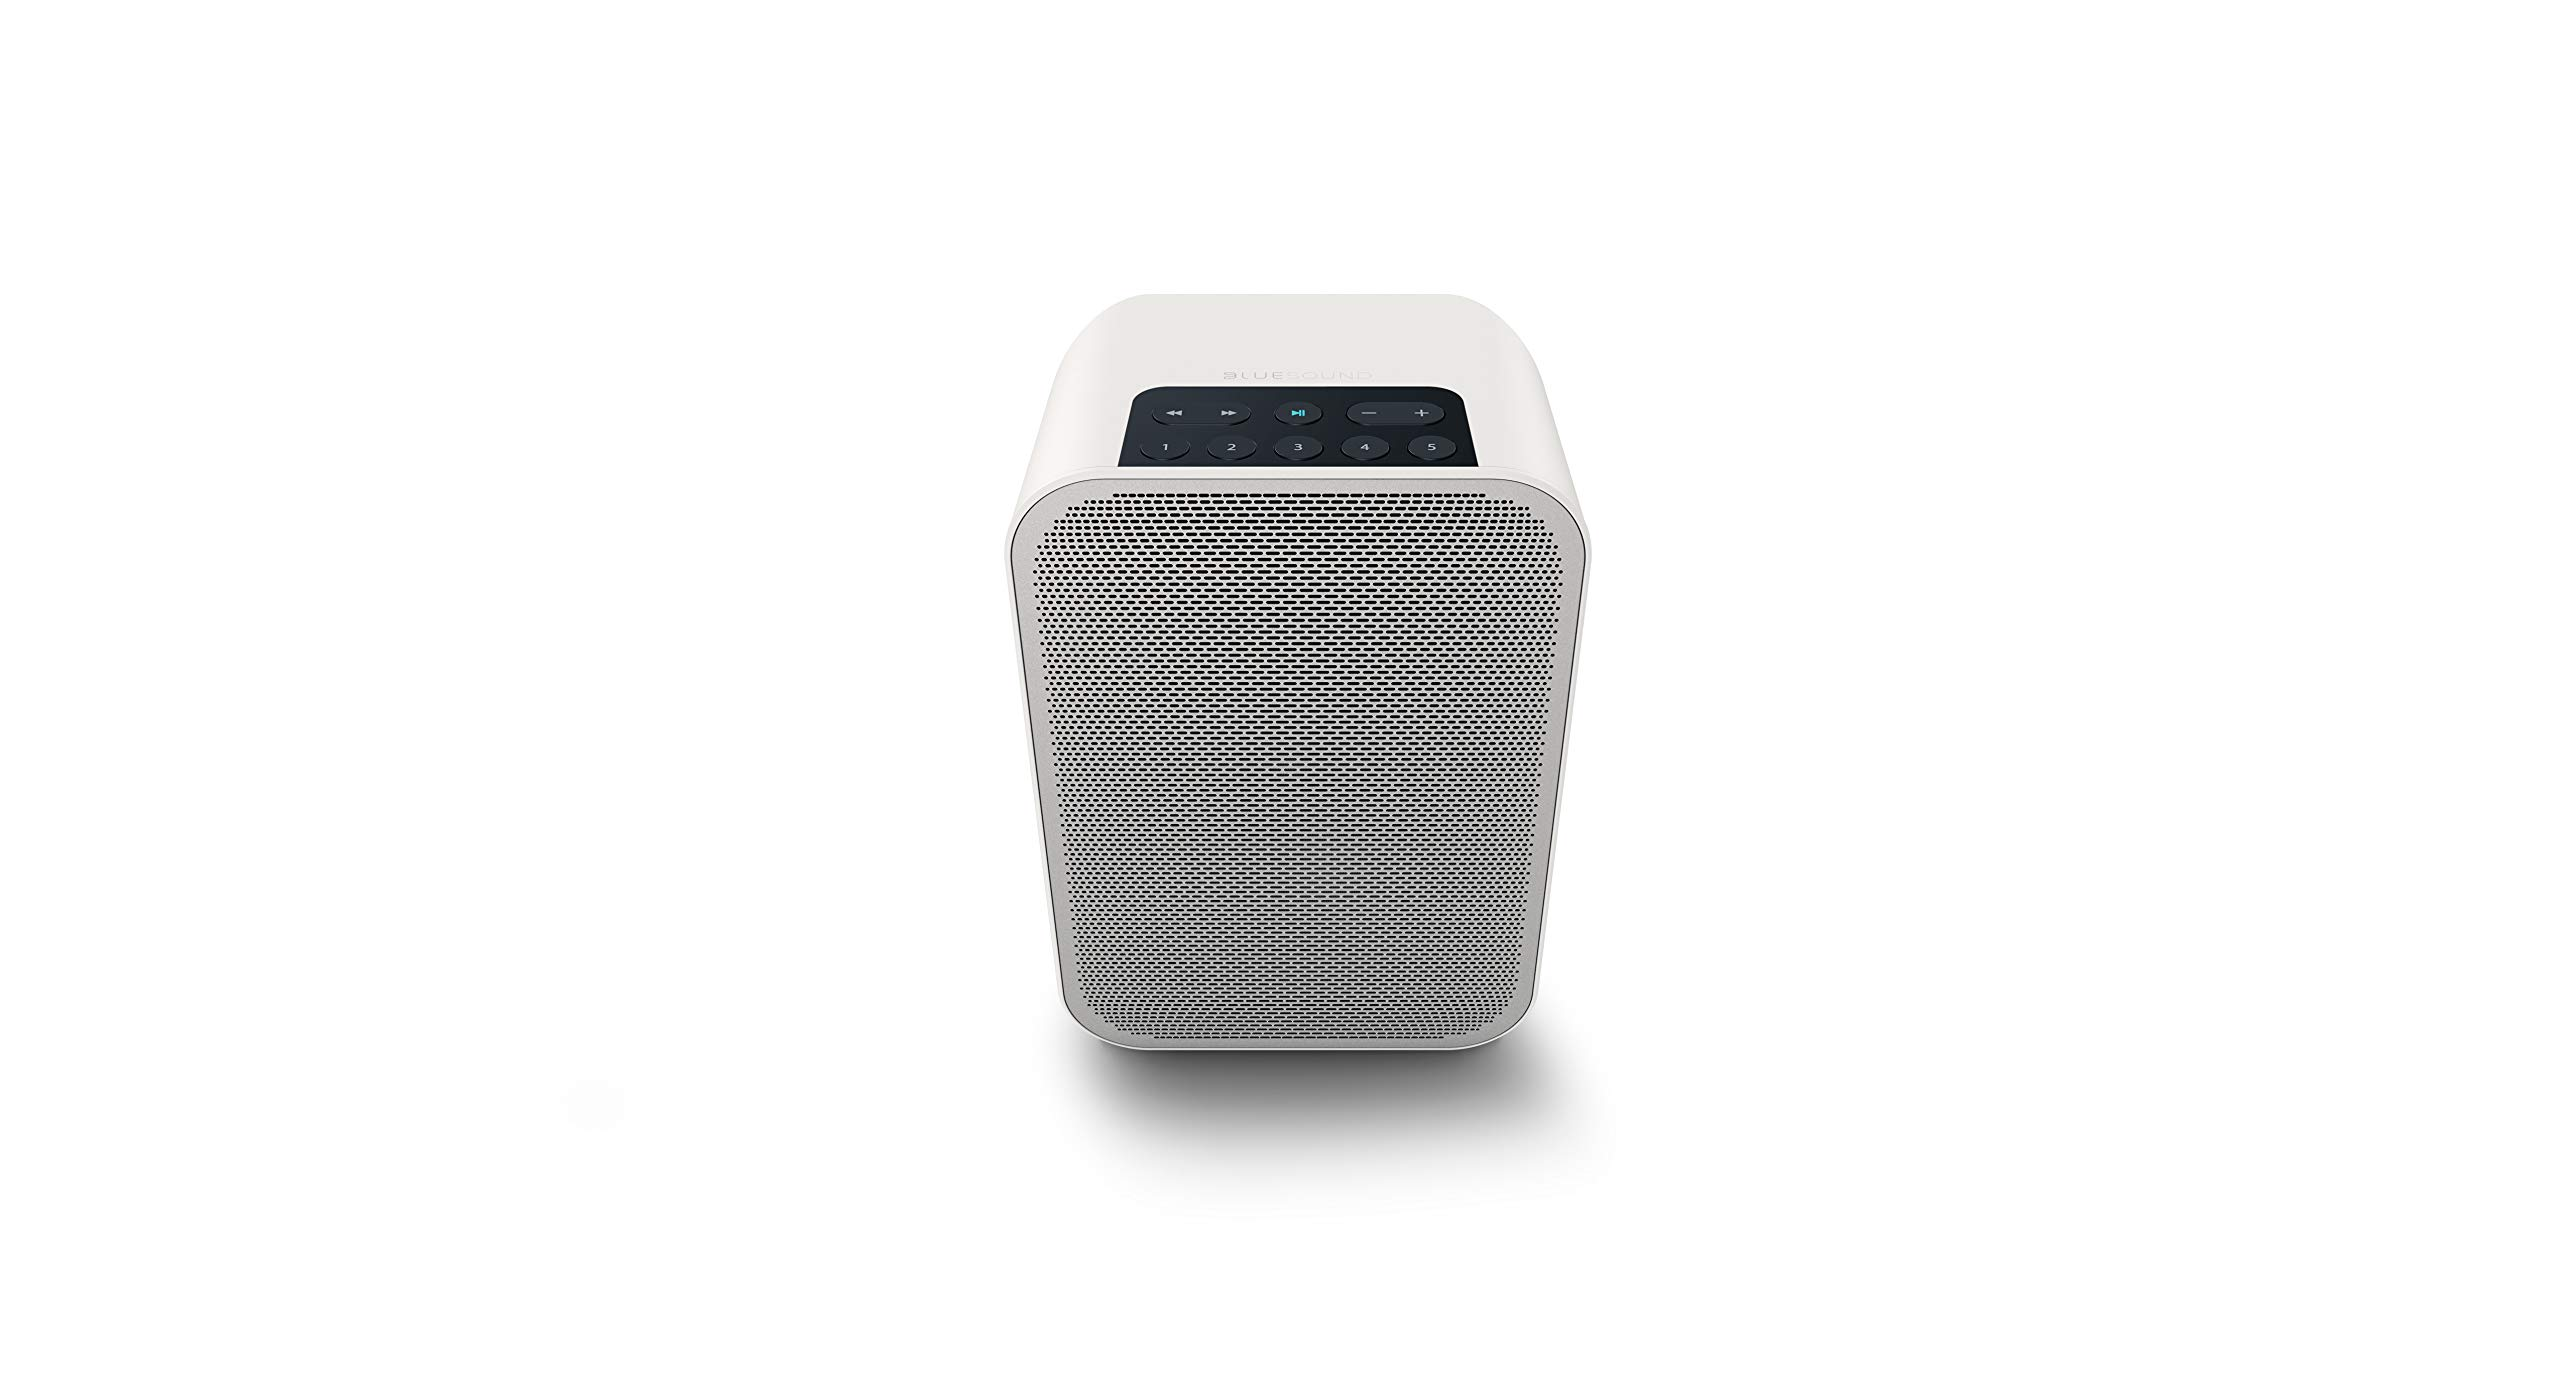 Bluesound Pulse Flex 2i Portable Wireless Multi-Room Smart Speaker with Bluetooth - White - Works with Alexa and Siri